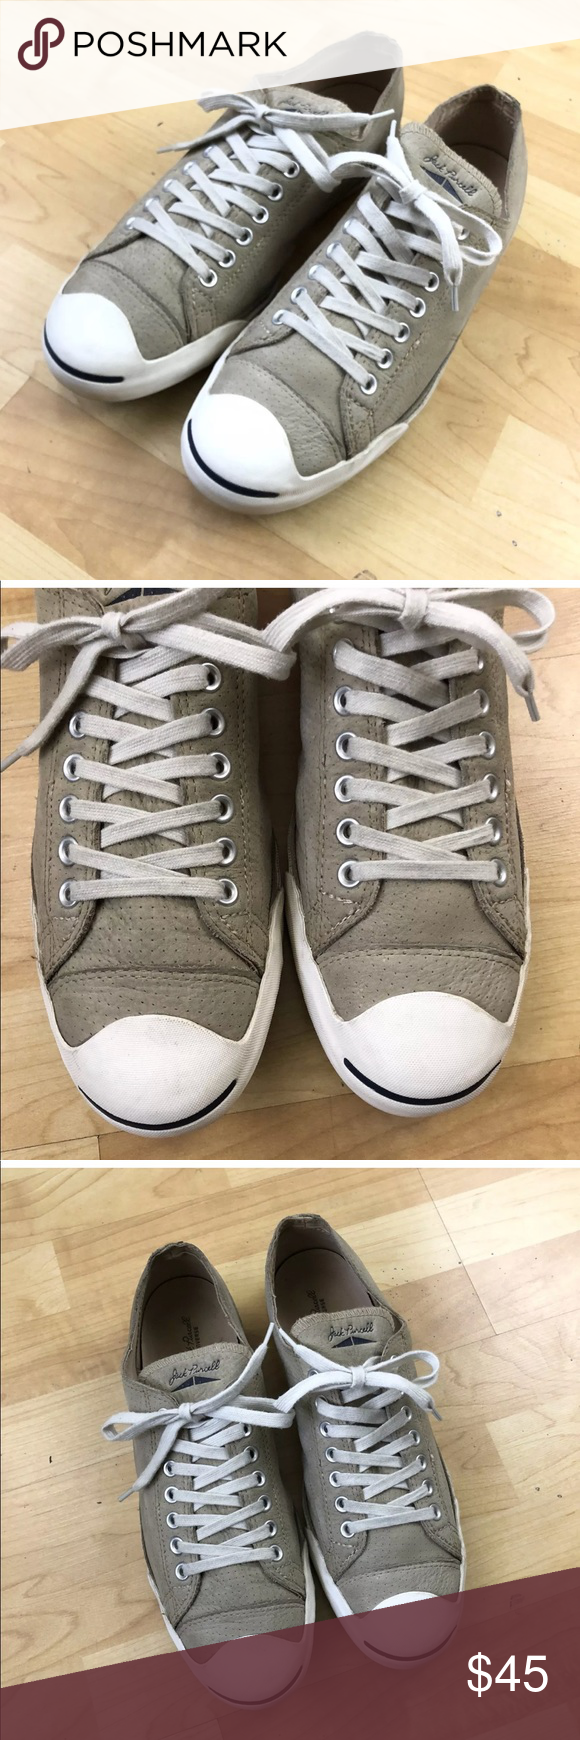 f46f2a4a3a80 Jack Purcell Suede Sneakers Mens Size 13 Jack Purcell Converse Sneakers Gray  Suede Size 13 Men  15 Women Overall good condition